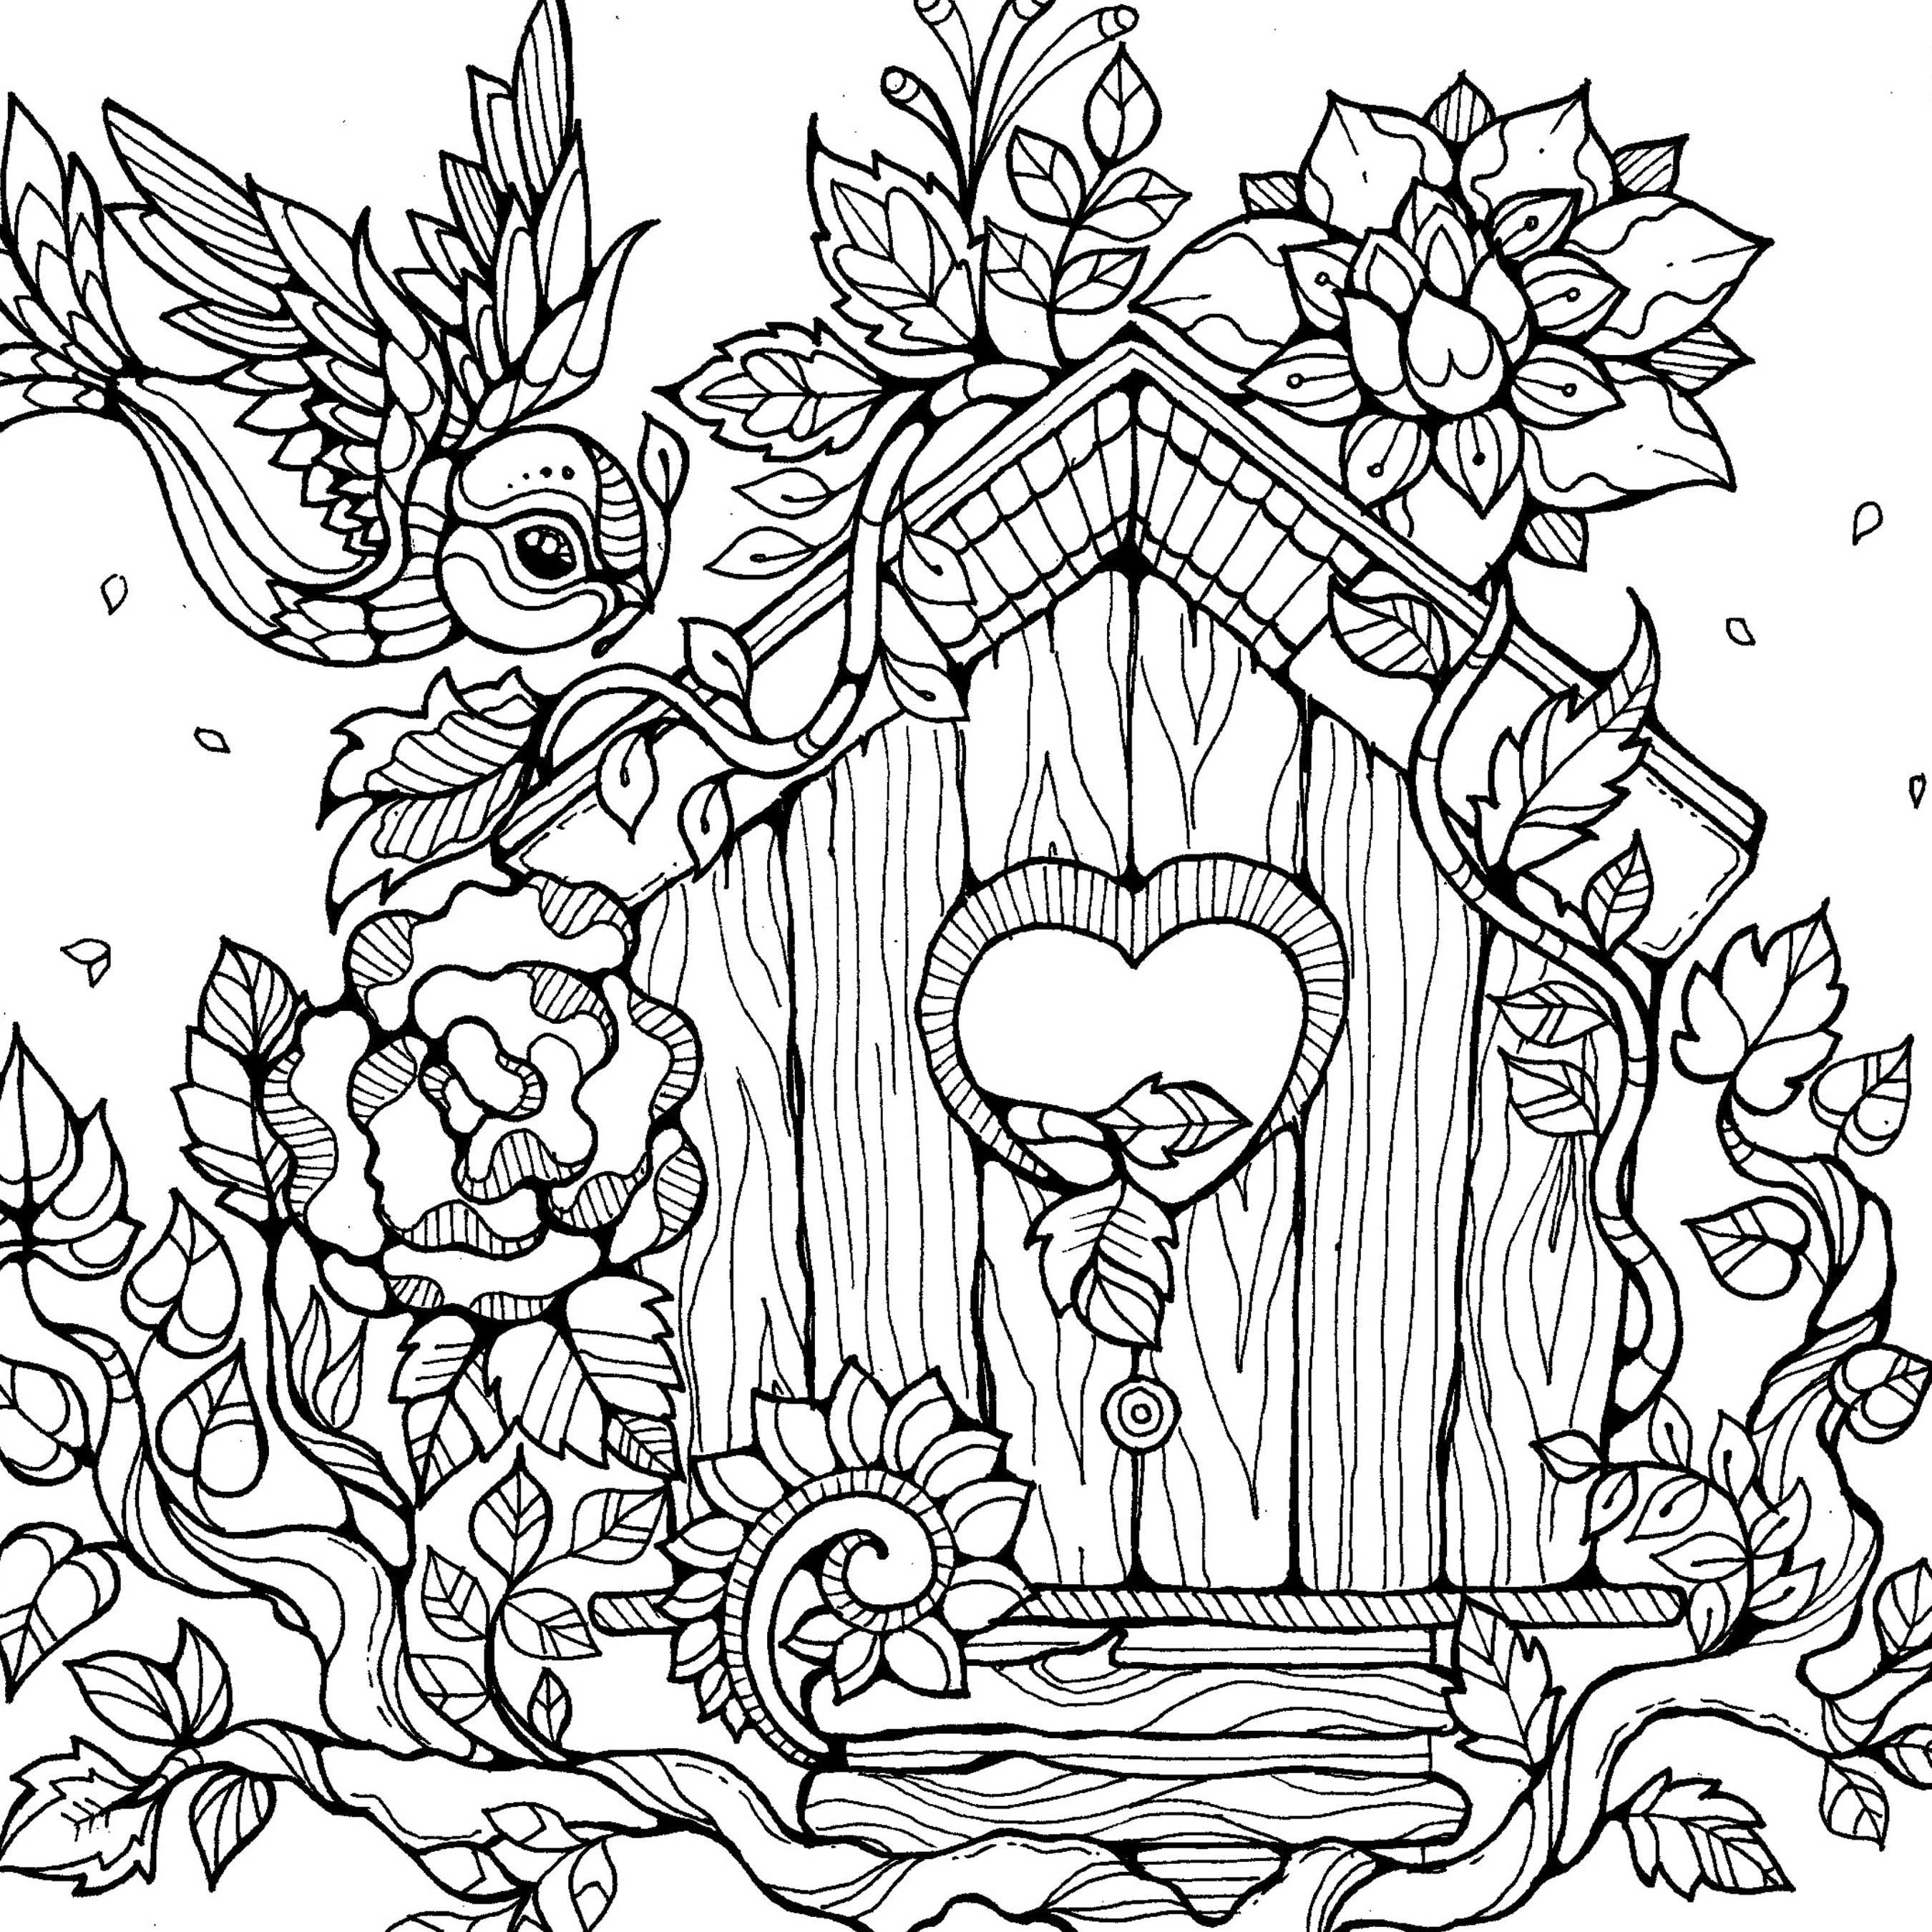 Colouring Pages by Dee Mans on Behance | ✐Zentangles ~ Adult ...